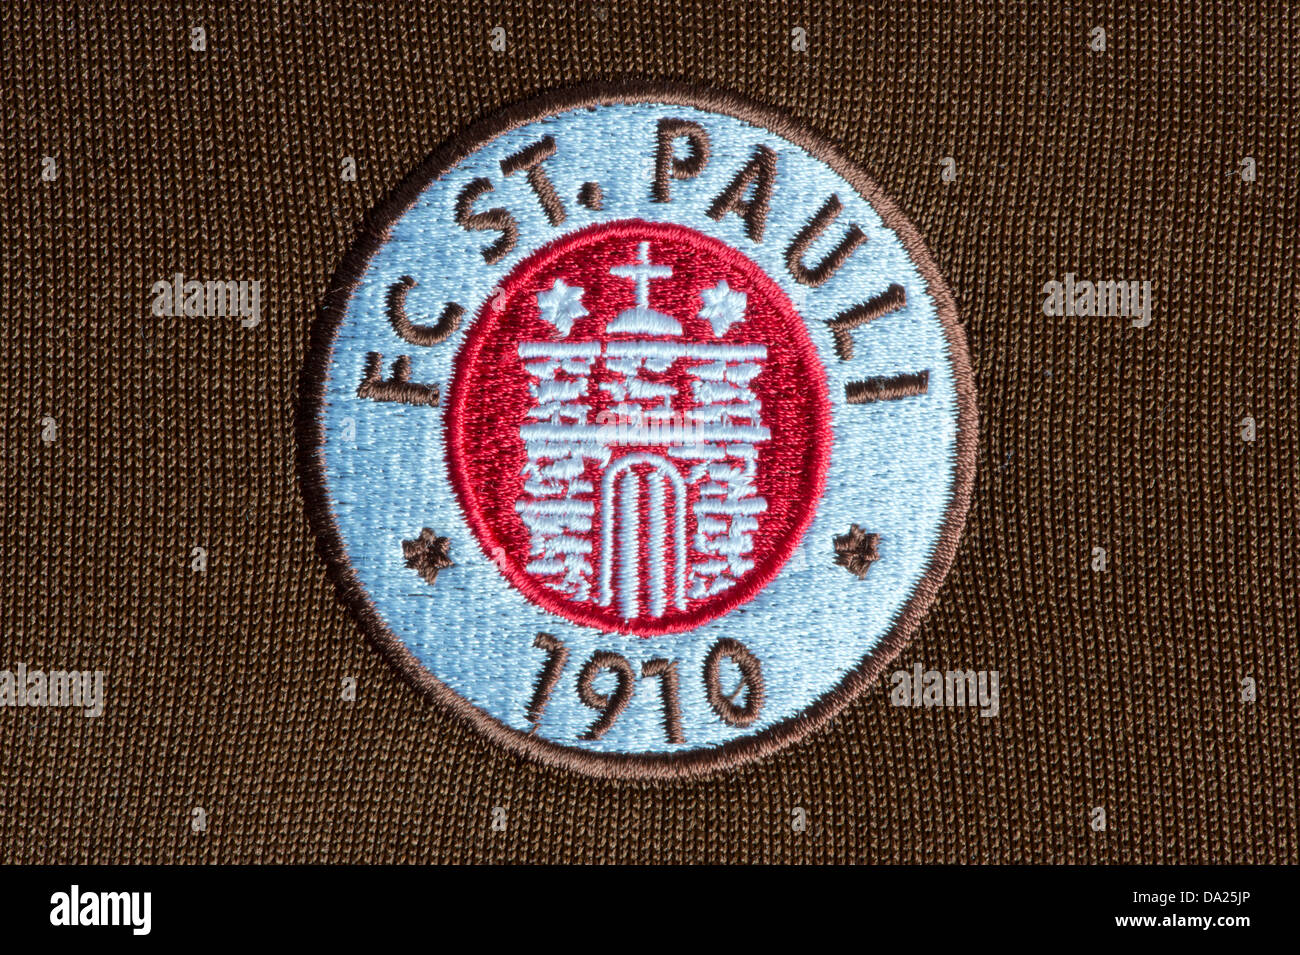 The St Pauli Football Club badge as seen on an official tracksuit (Editorial use only). - Stock Image